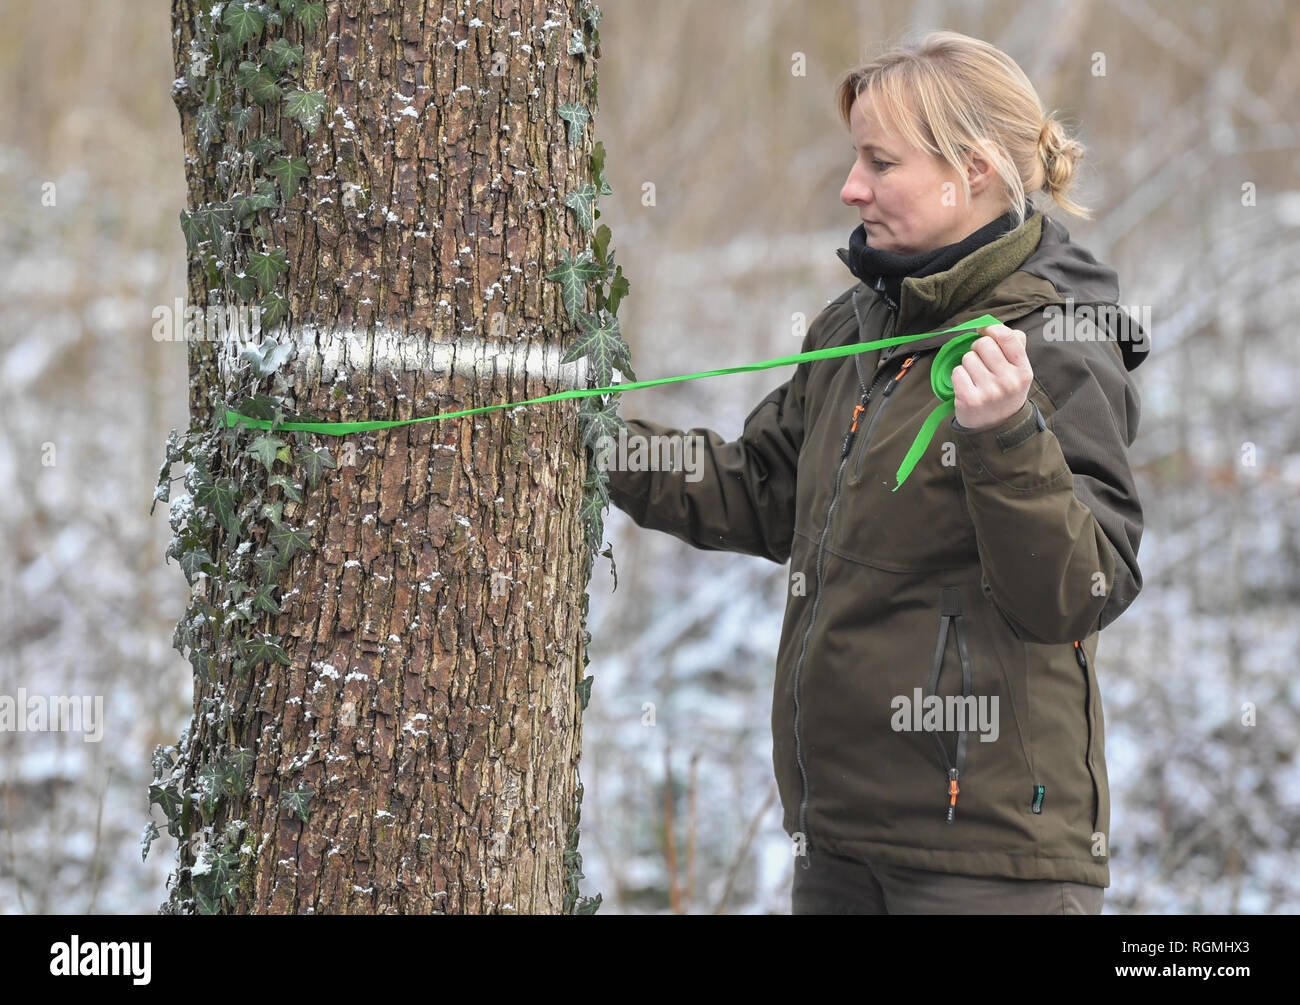 29 January 2019, Brandenburg, Sauen: Monique Müller, forester of the August Beer Foundation, ties a mark around the trunk of a tree hazel (Corylus colurna). The tree hazel is the large representative of the well-known hazelnut bush. Employees of the Brandenburg State Forest Service and the Humboldt University of Berlin harvested so-called 'Reiser' (rice harvesters) in the crowns of the tree hazel for the propagation of this tree species. The forest district Sauen has a very long and traditional history, which was founded before August Biers (1861-1949). August Bier acquired the Sauen forest es - Stock Image